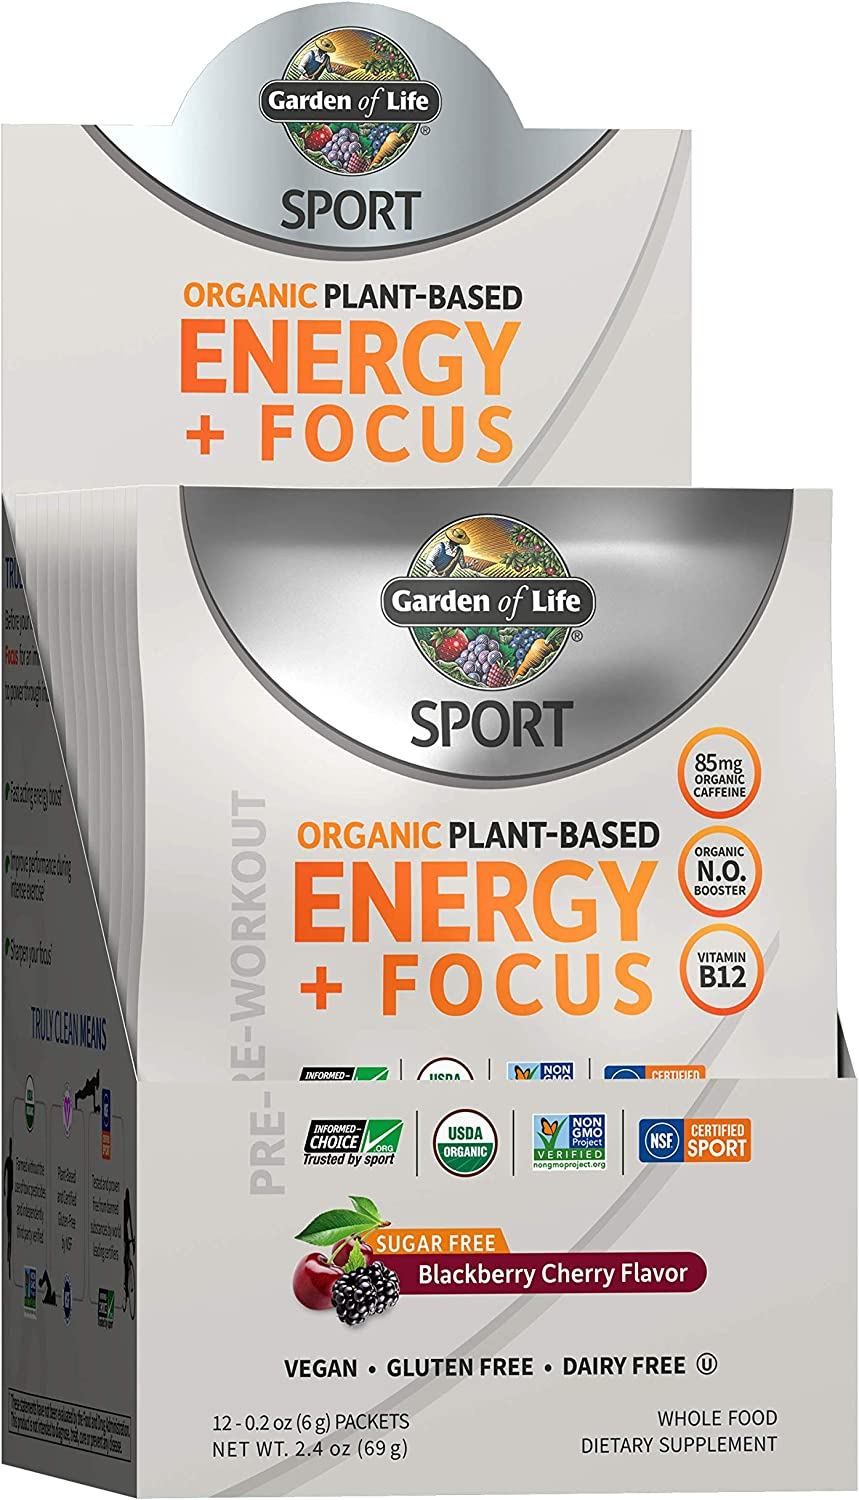 Garden of Life SPORT Organic Plant-Based Energy + Focus Vegan Pre Workout Powder Packets (12ct), Sugar Free Blackberry Cherry Clean Preworkout, 85mg Caffeine Natural NO Booster - Packaging May Vary